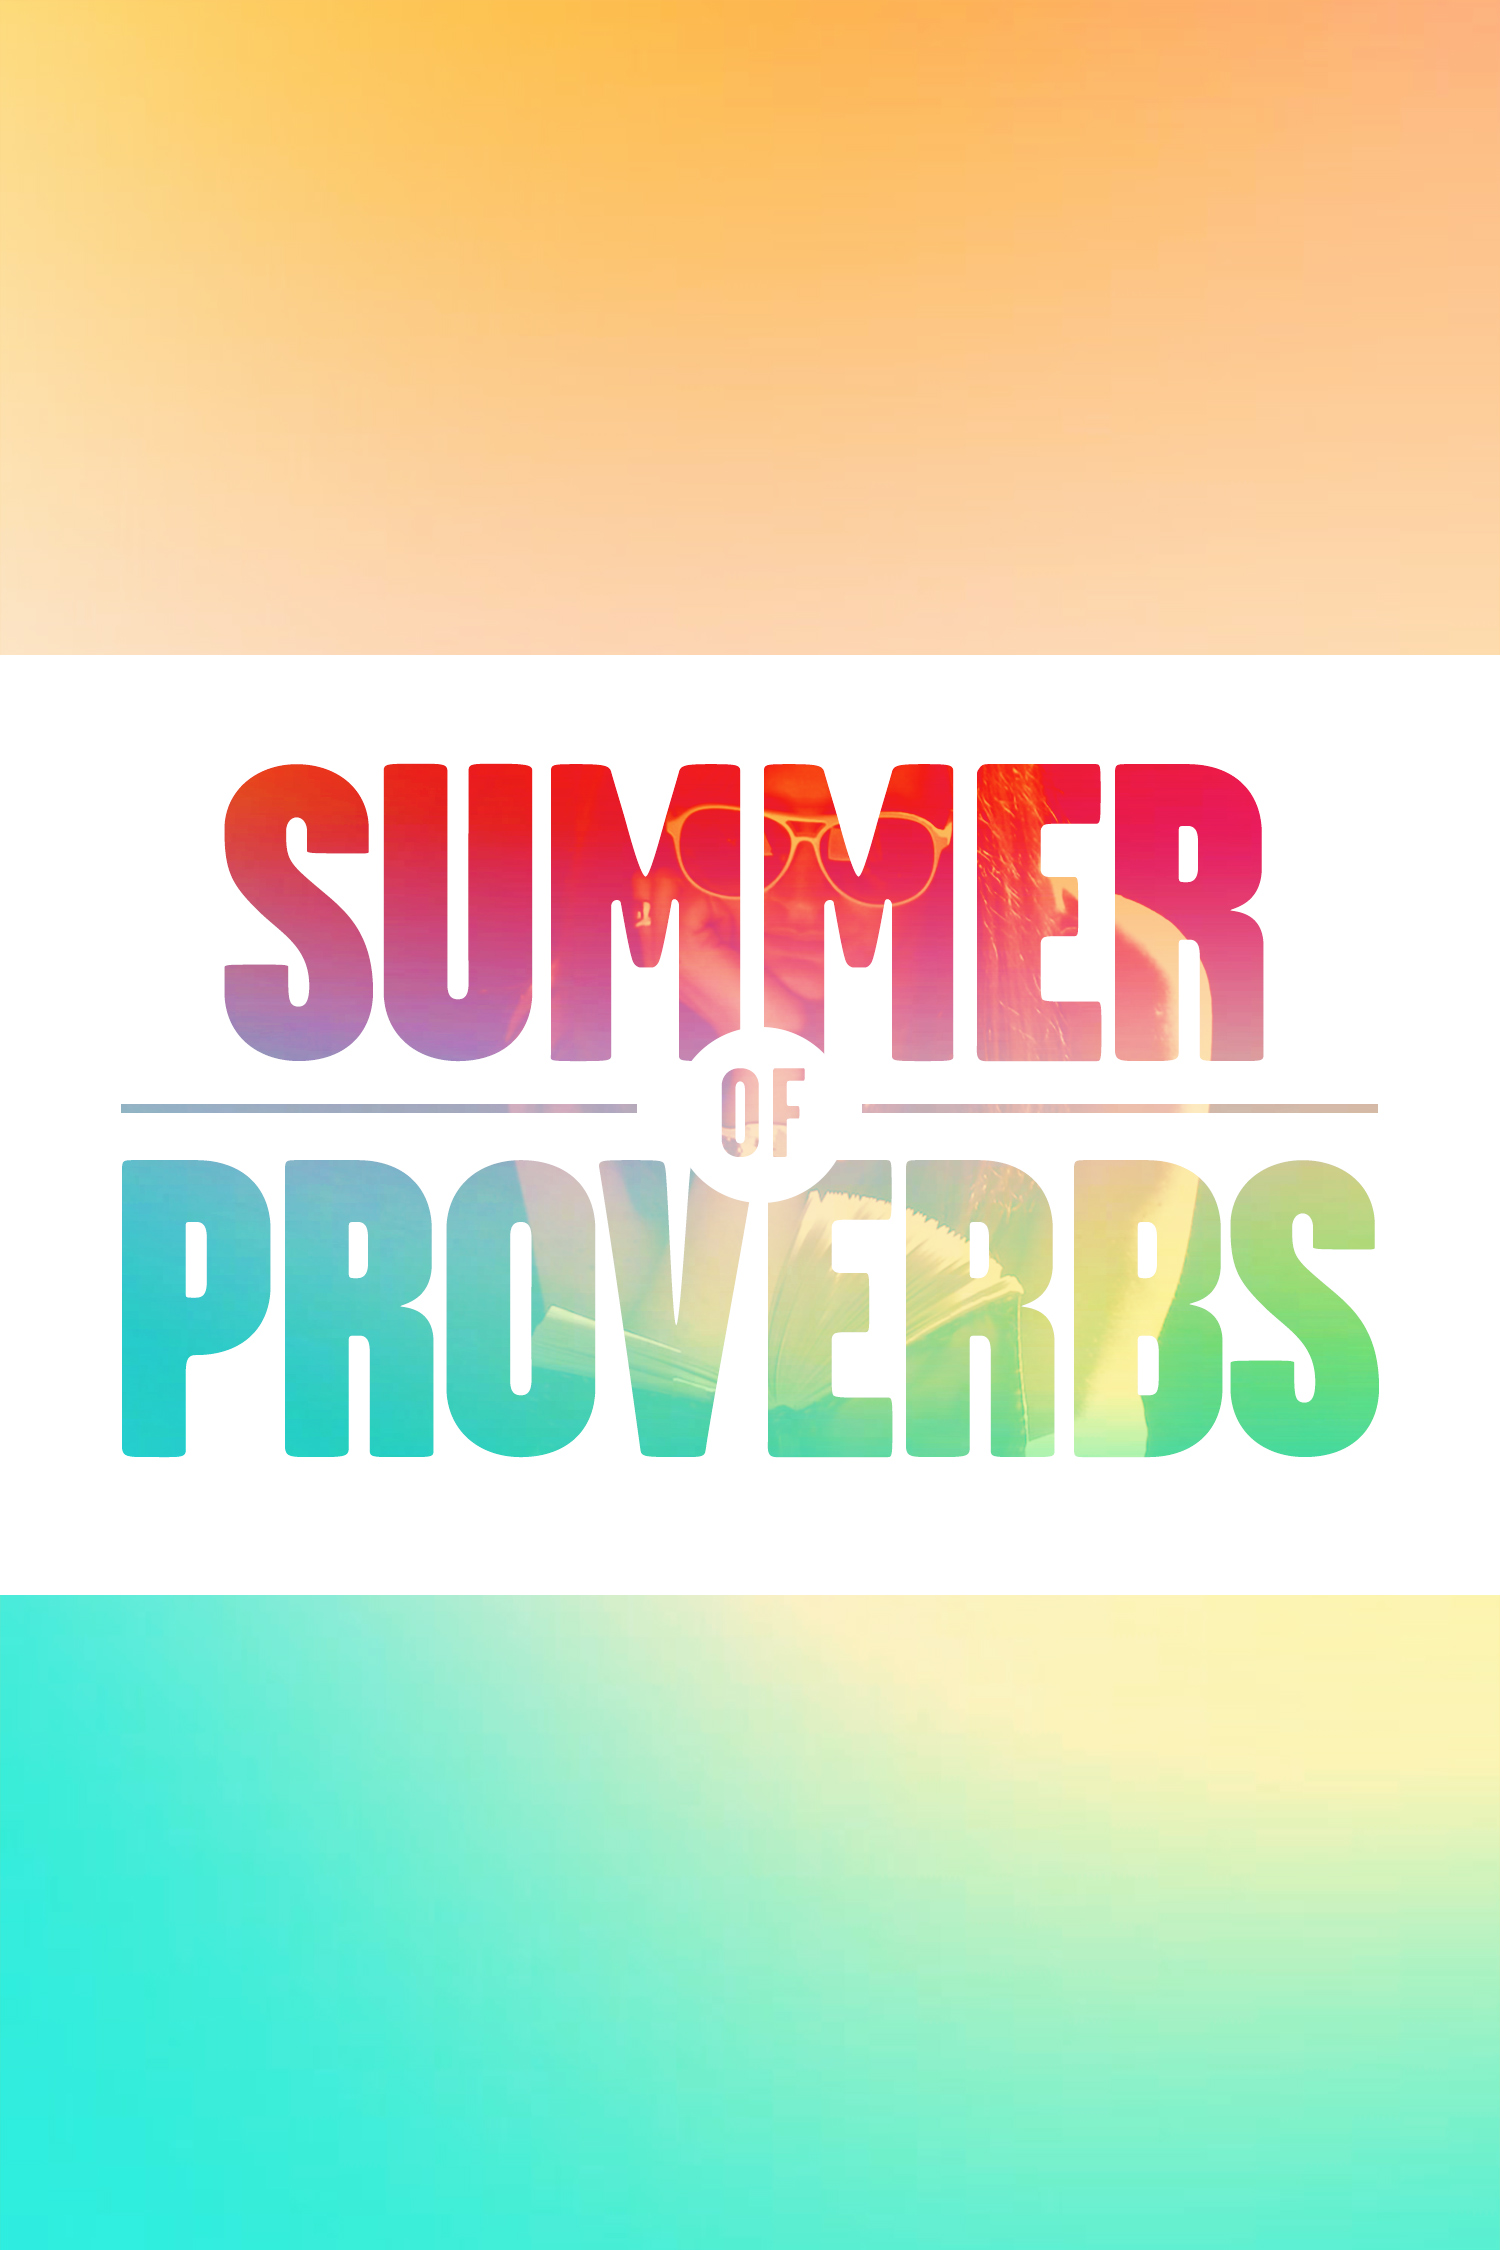 summer-proverbs-series-art.jpg